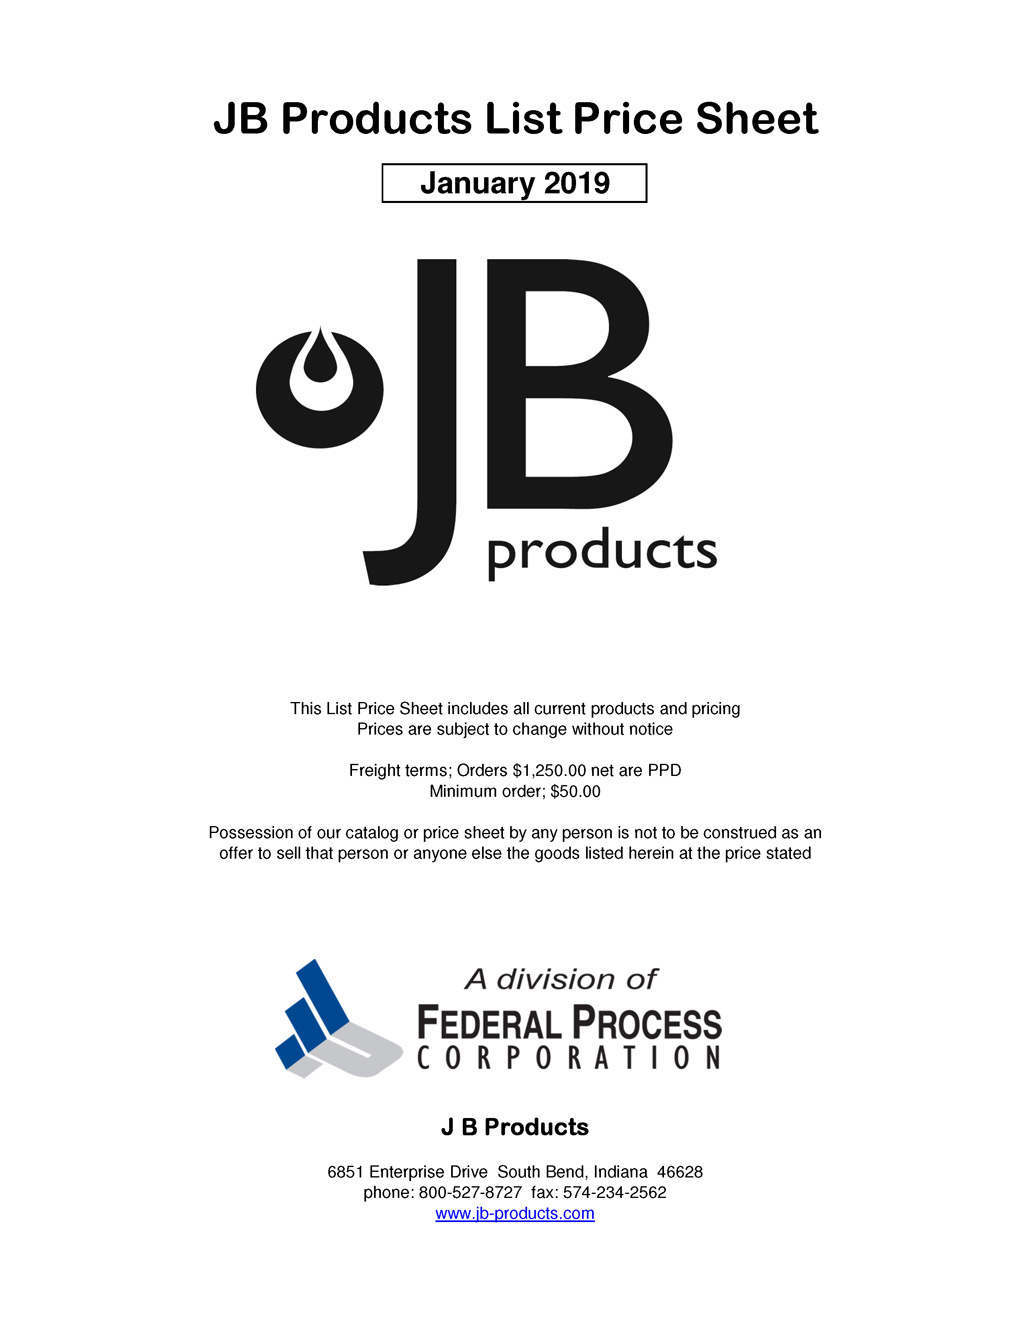 2019 JB-Products List Price Sheet cover